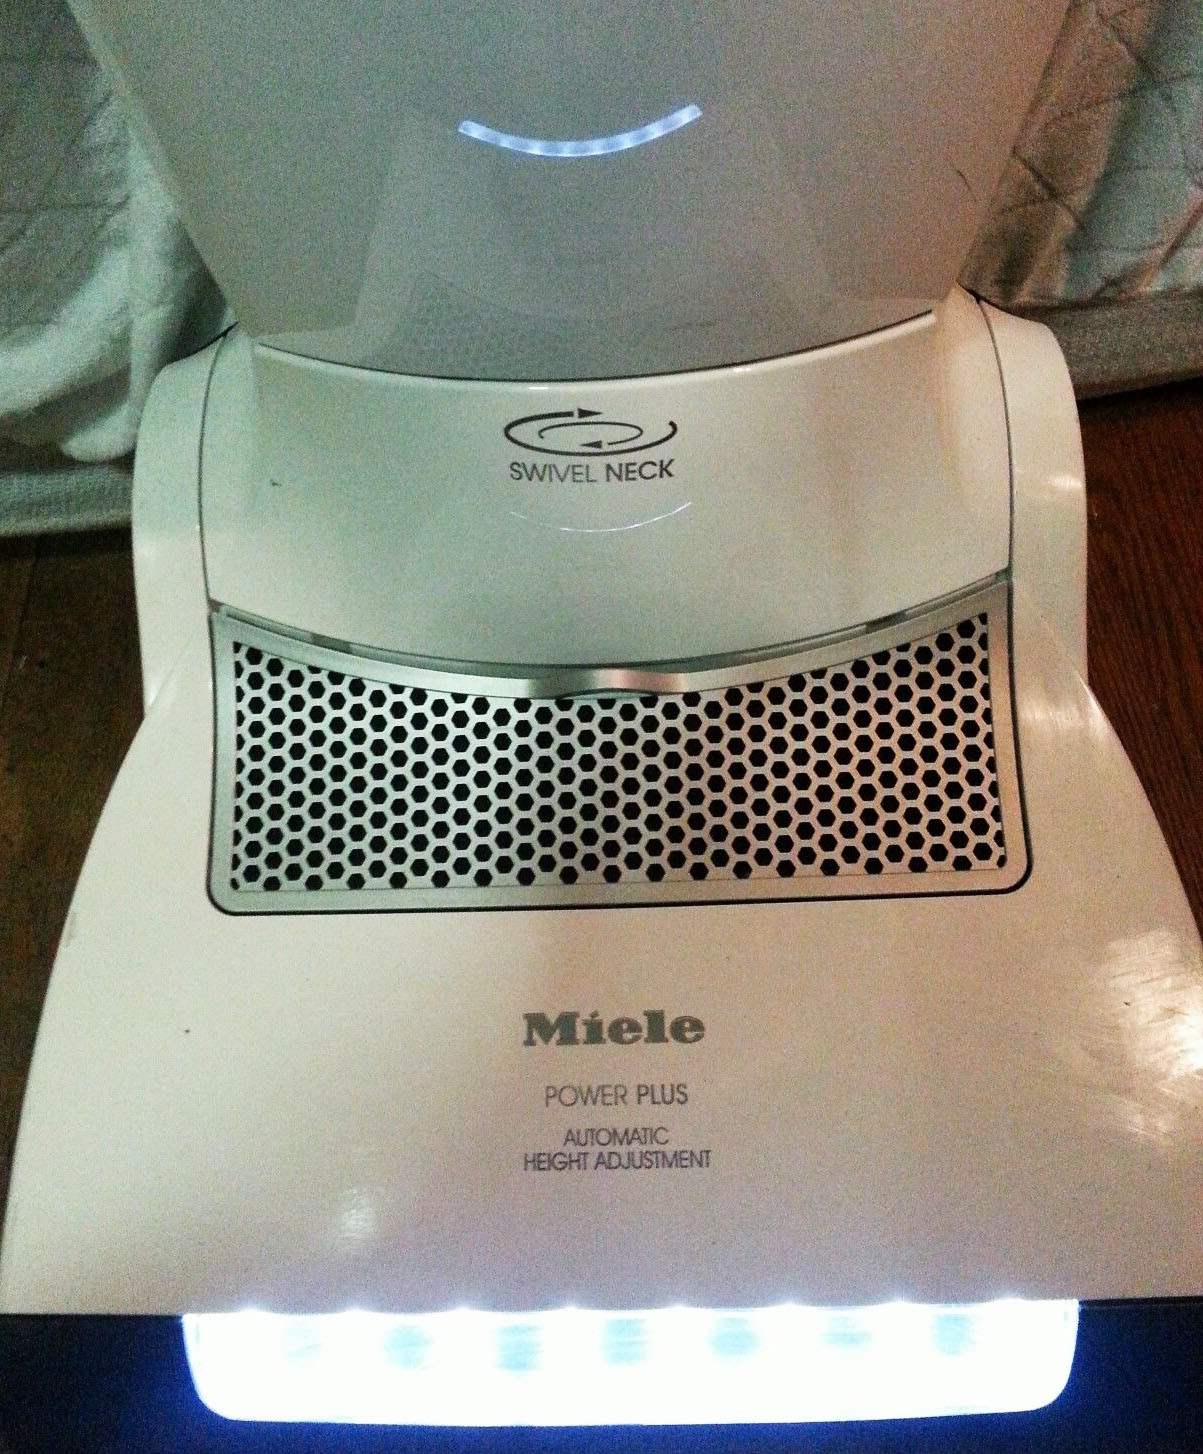 Miele LED lights